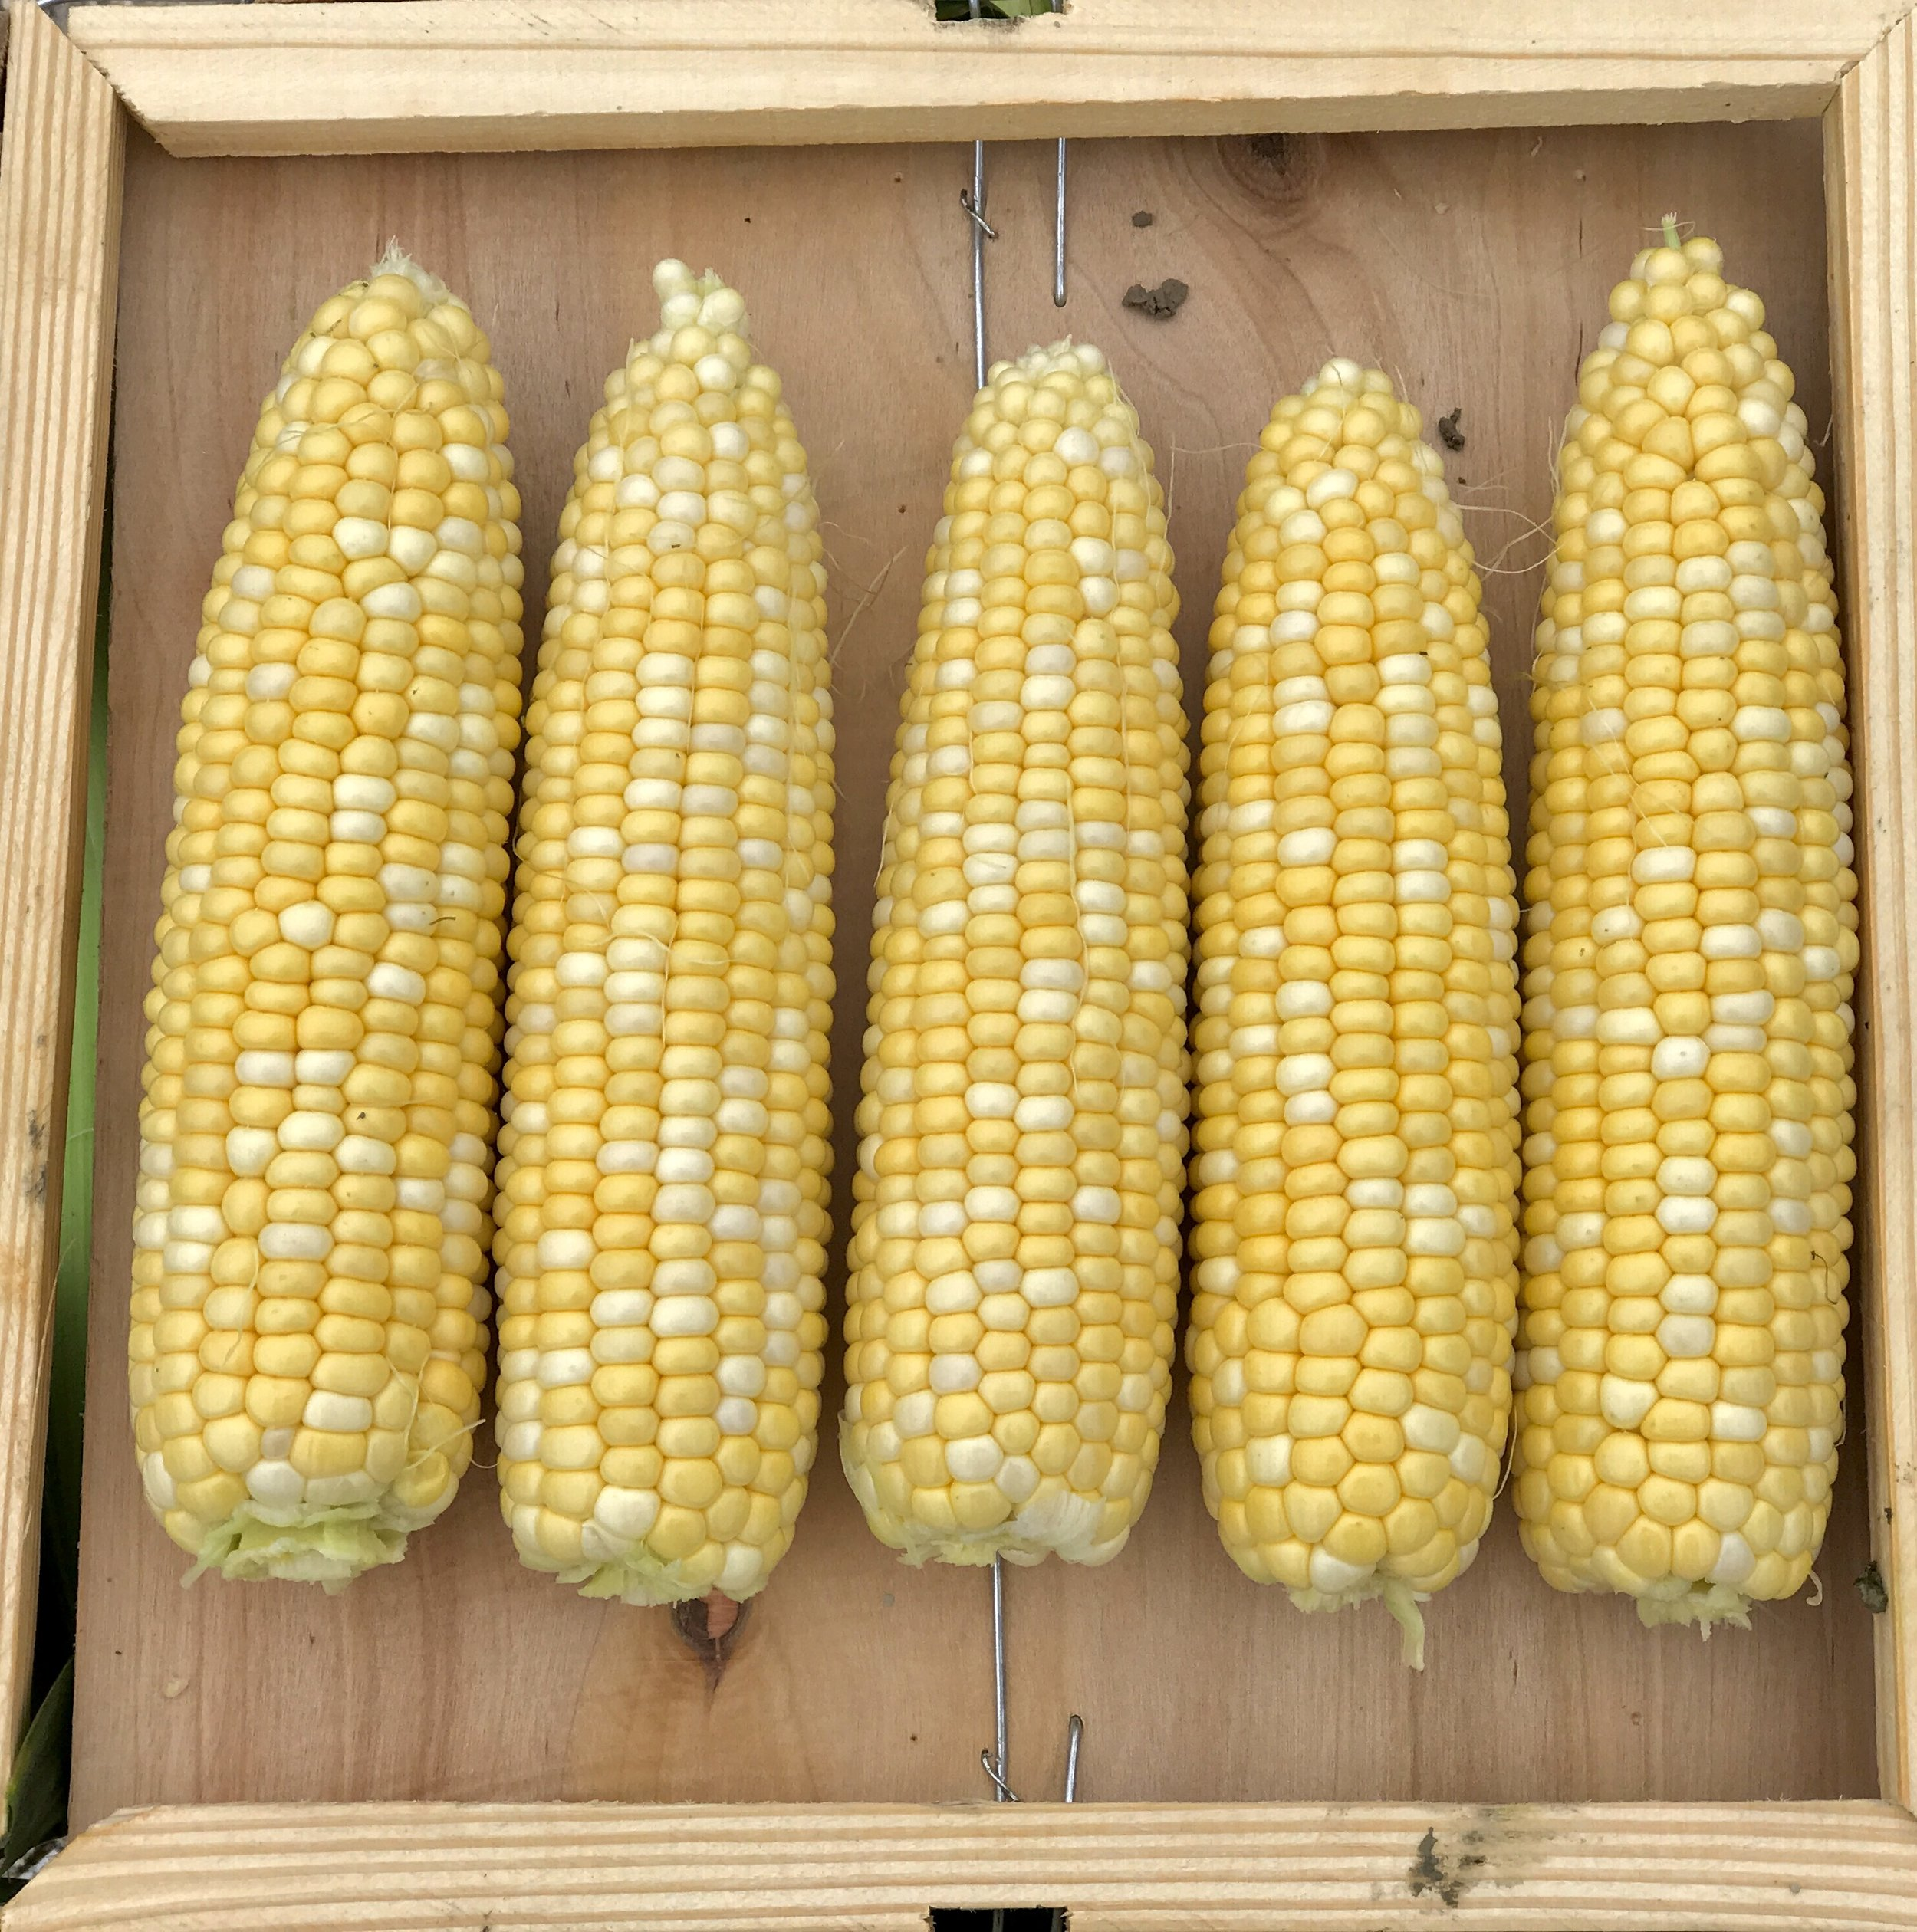 Some of our Bicolor Sweet Corn from  Alger Farms  on a crate